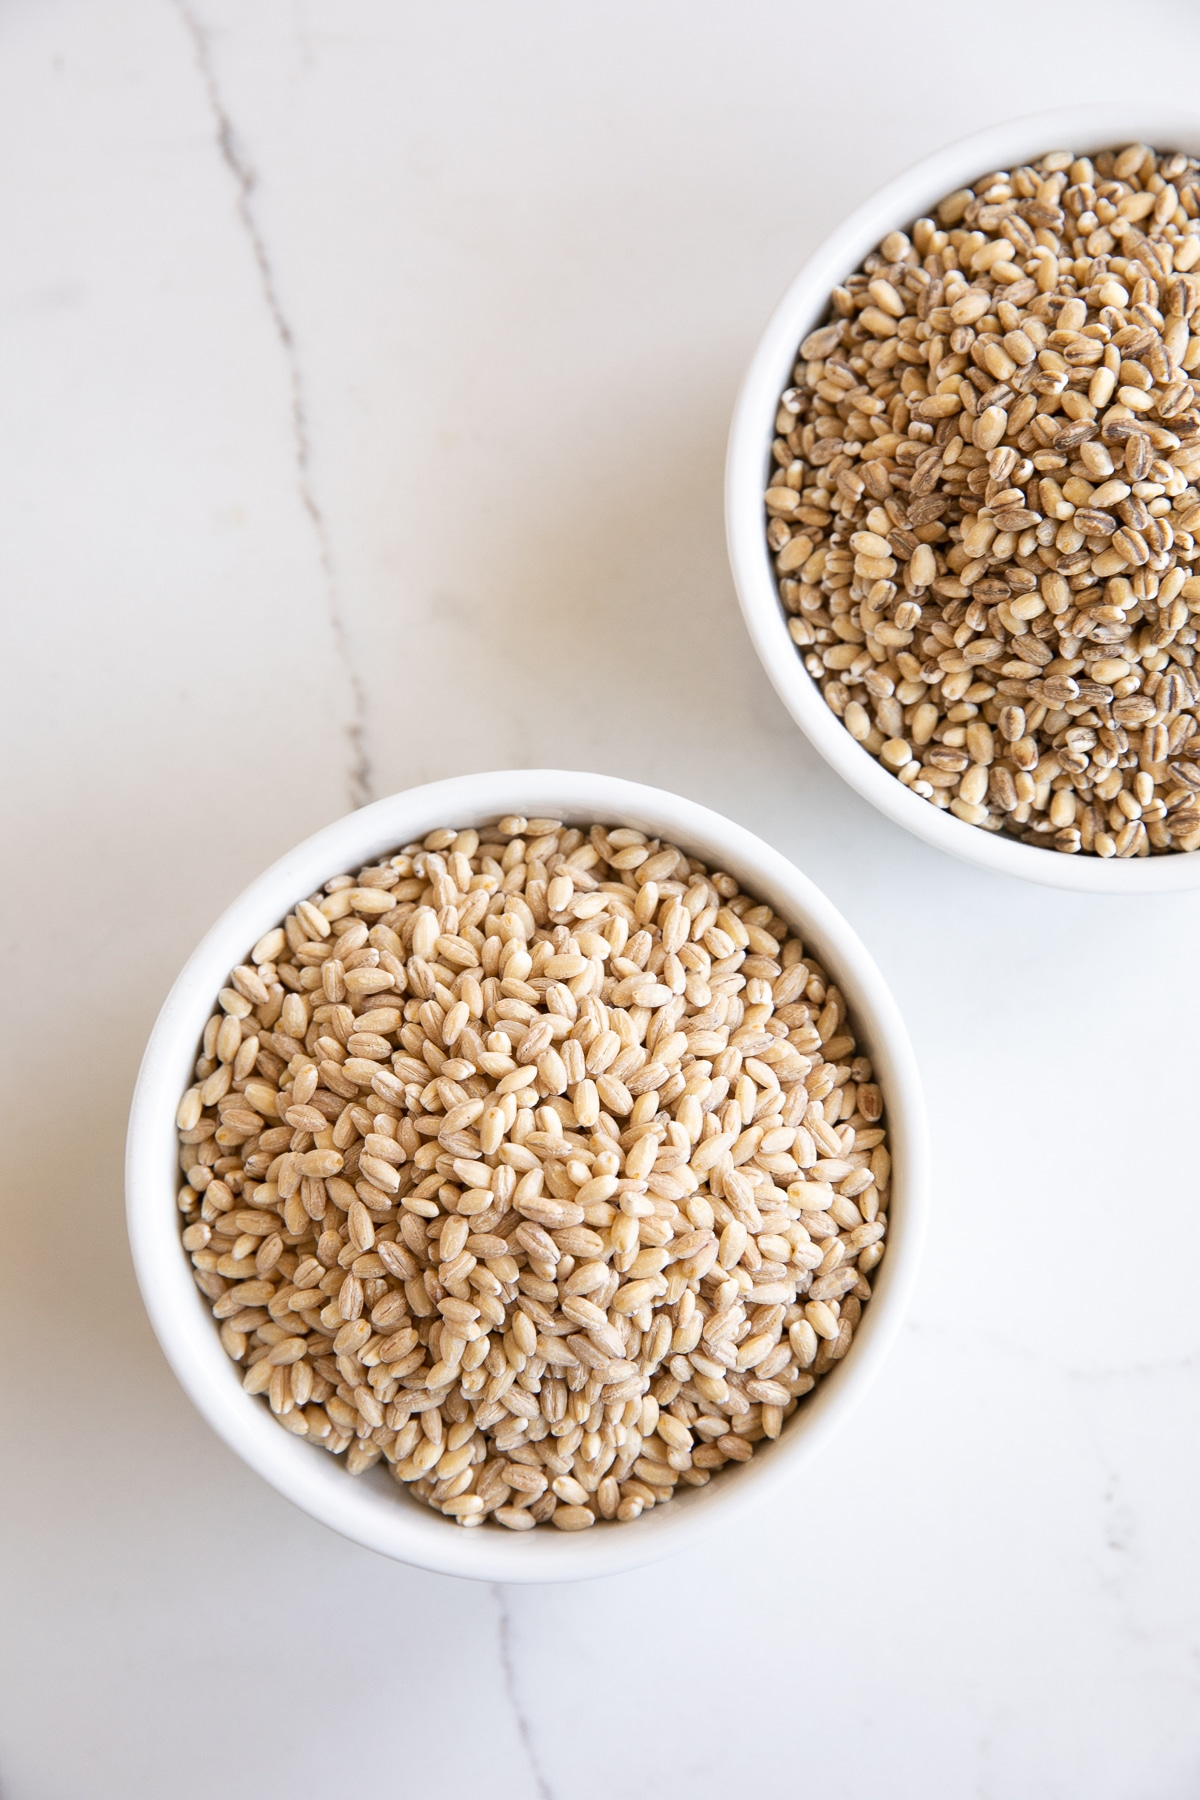 Image of two white ramekins one filled with pearled barley and one with hulled barley.